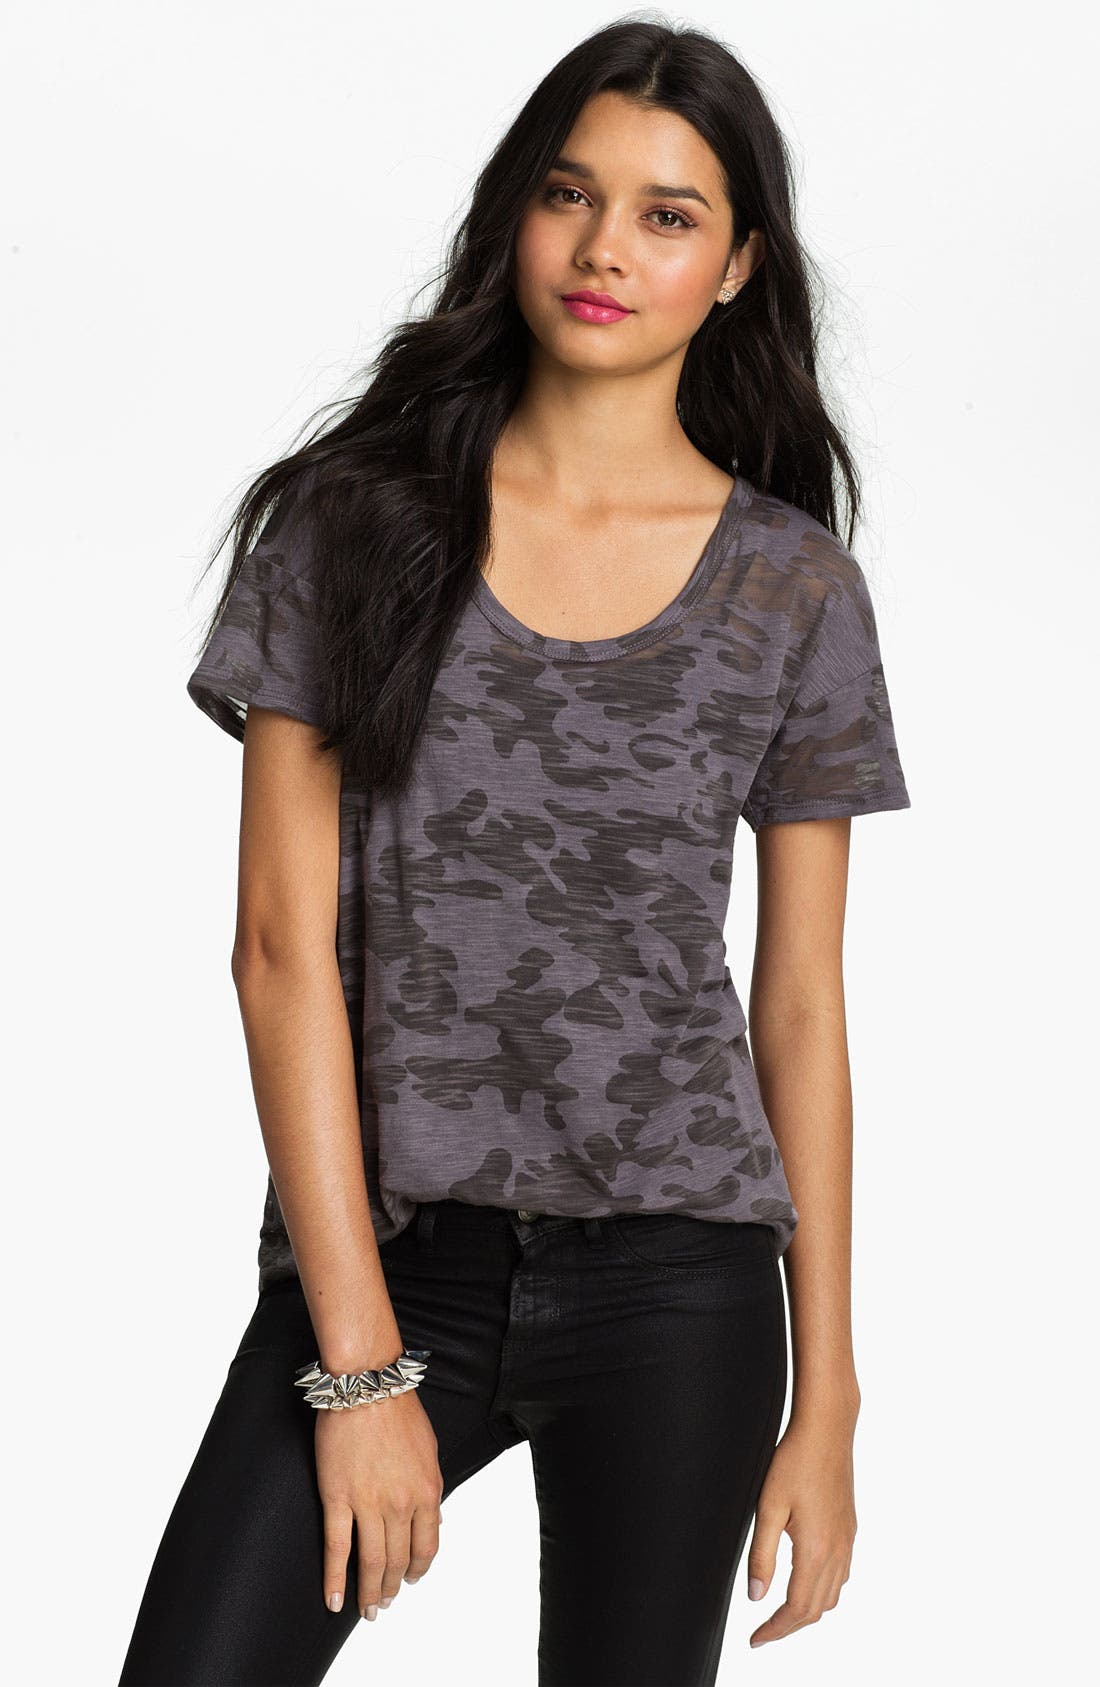 Main Image - Lush Clothing Camo Print Boyfriend Tee (Juniors)